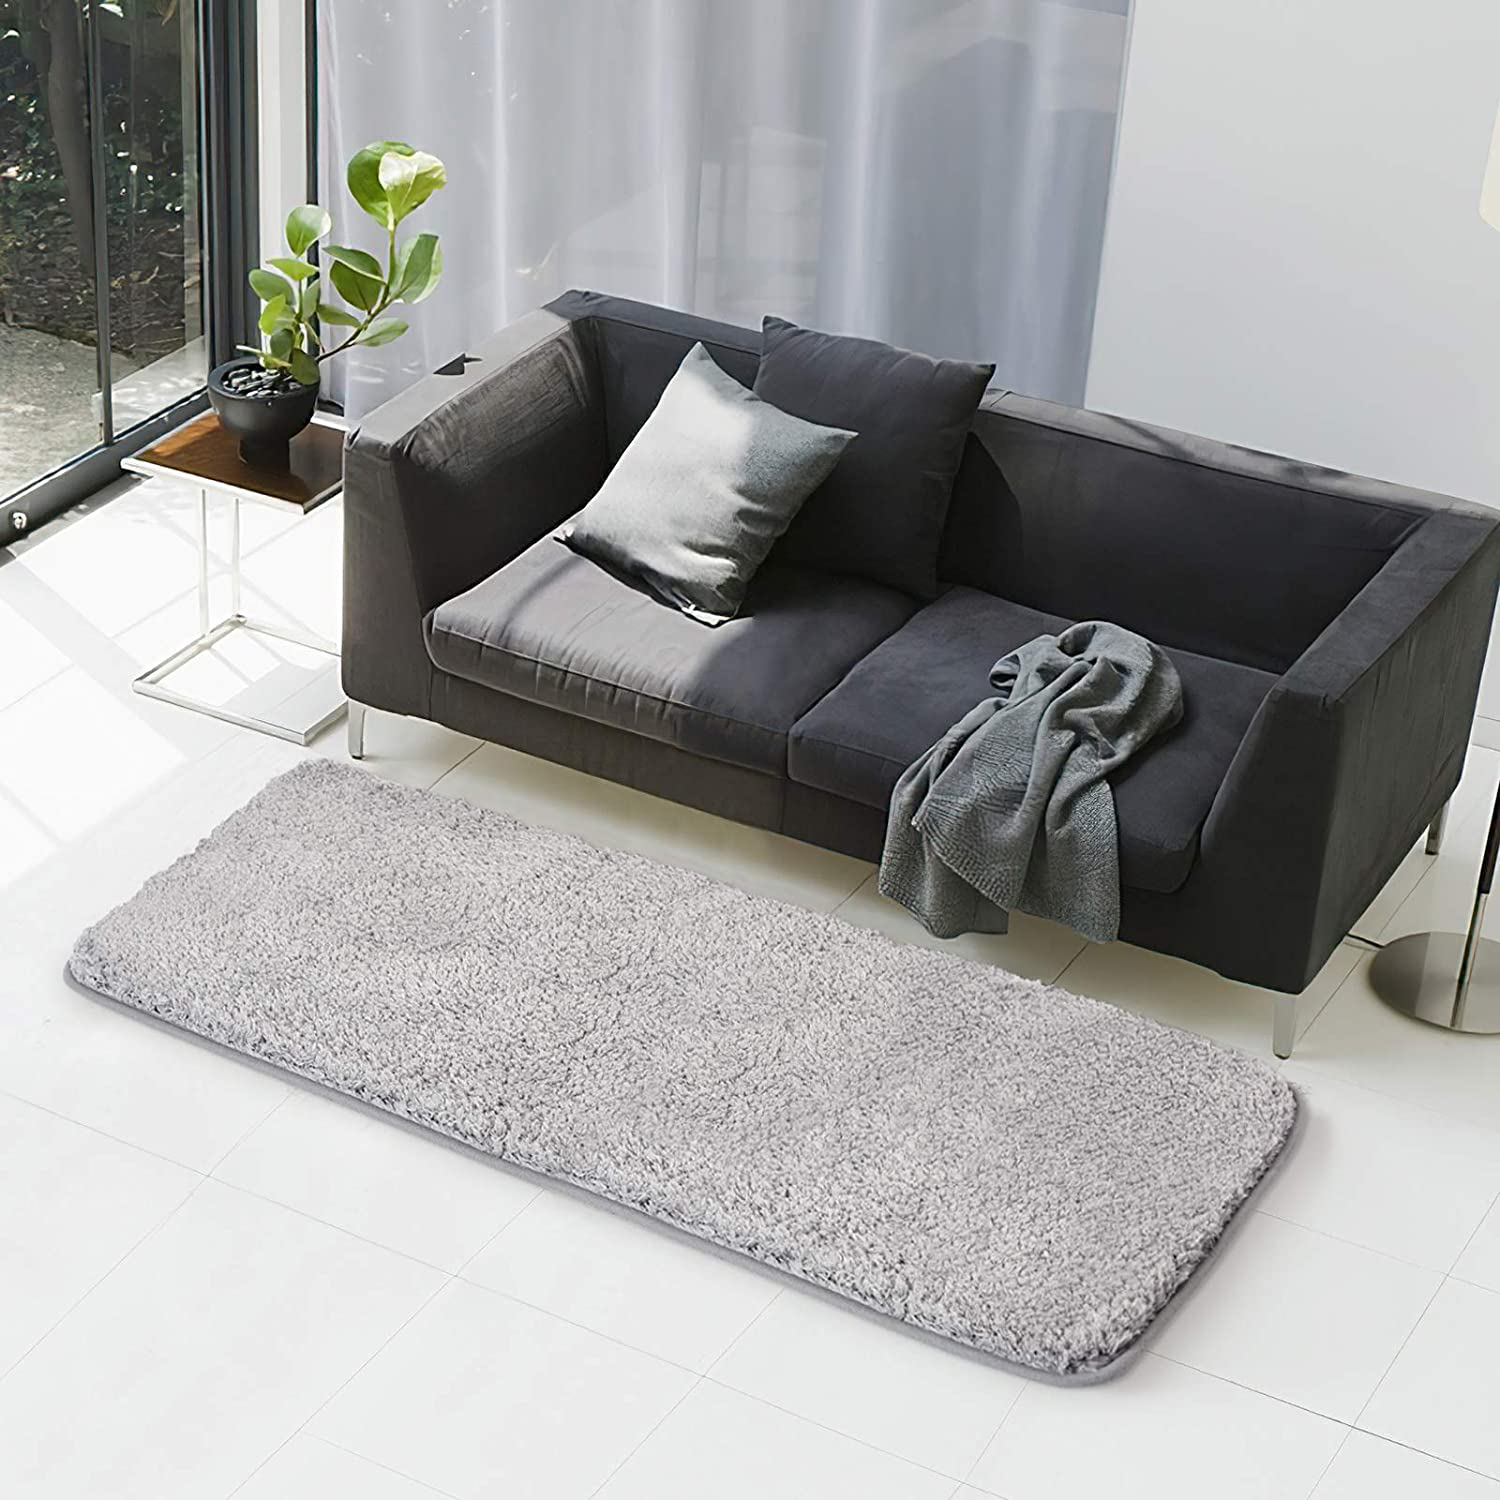 Bath Rug-COSY HOMEER 60x24 Inch NOT 40x60 Thickn Max 48% OFF Max 87% OFF Non-Slip Soft